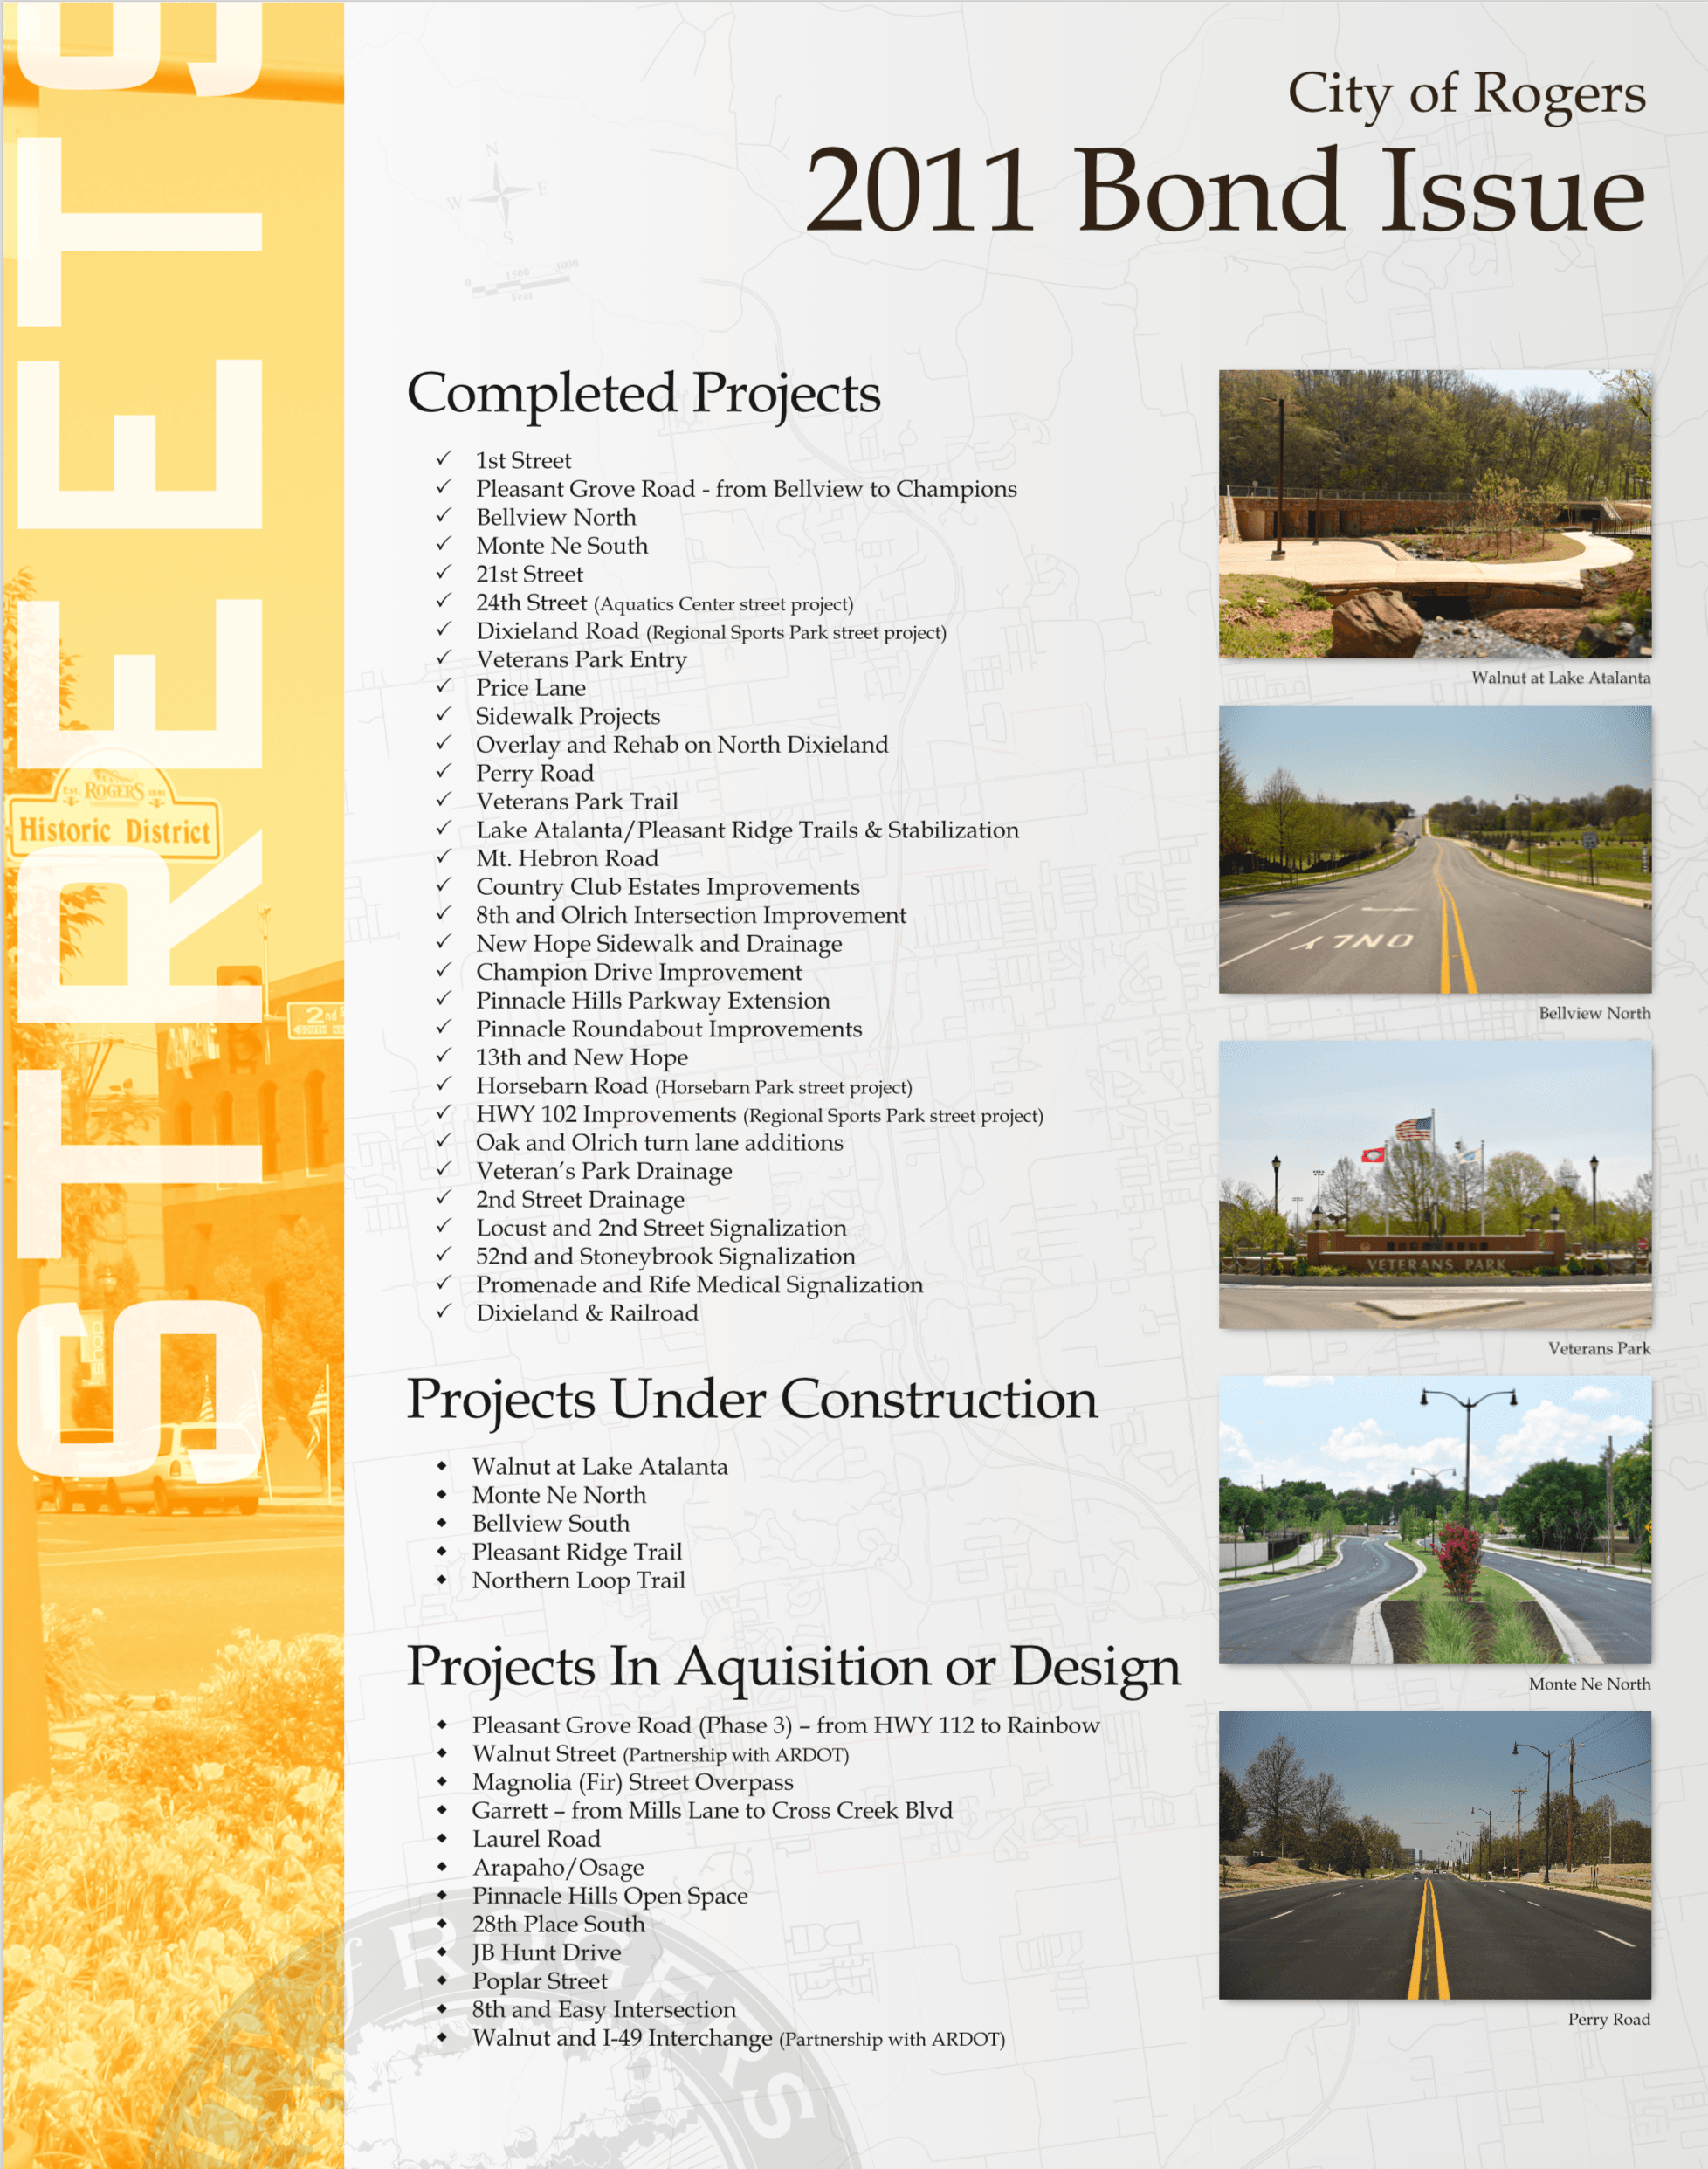 Completed Street Projects from 2011 Bond